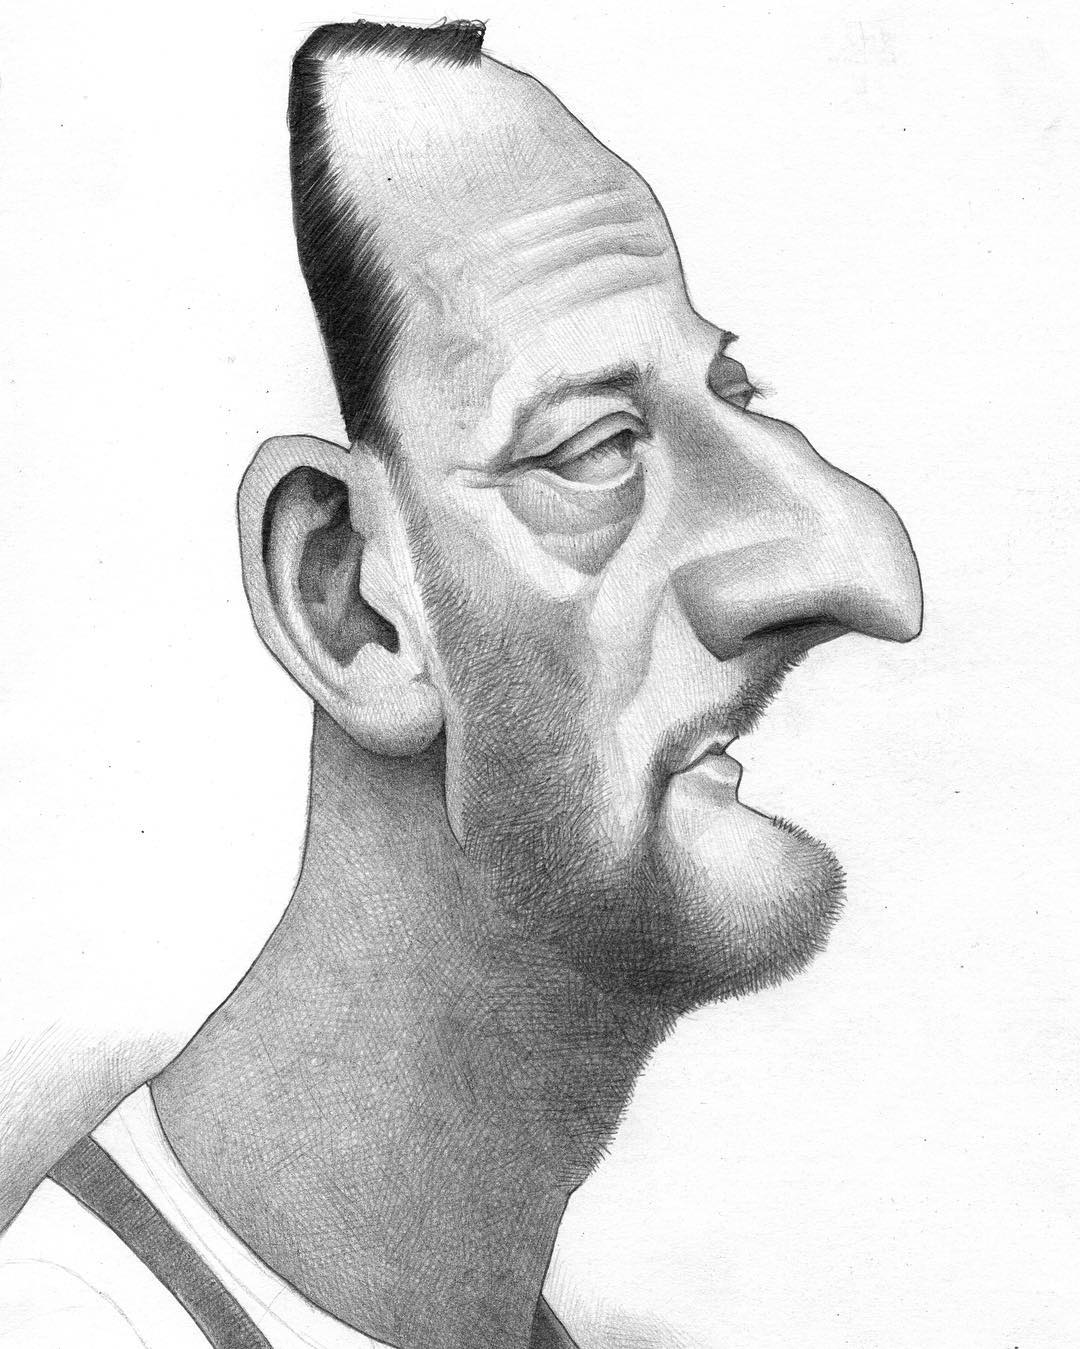 flathead caricatures by efrain malo